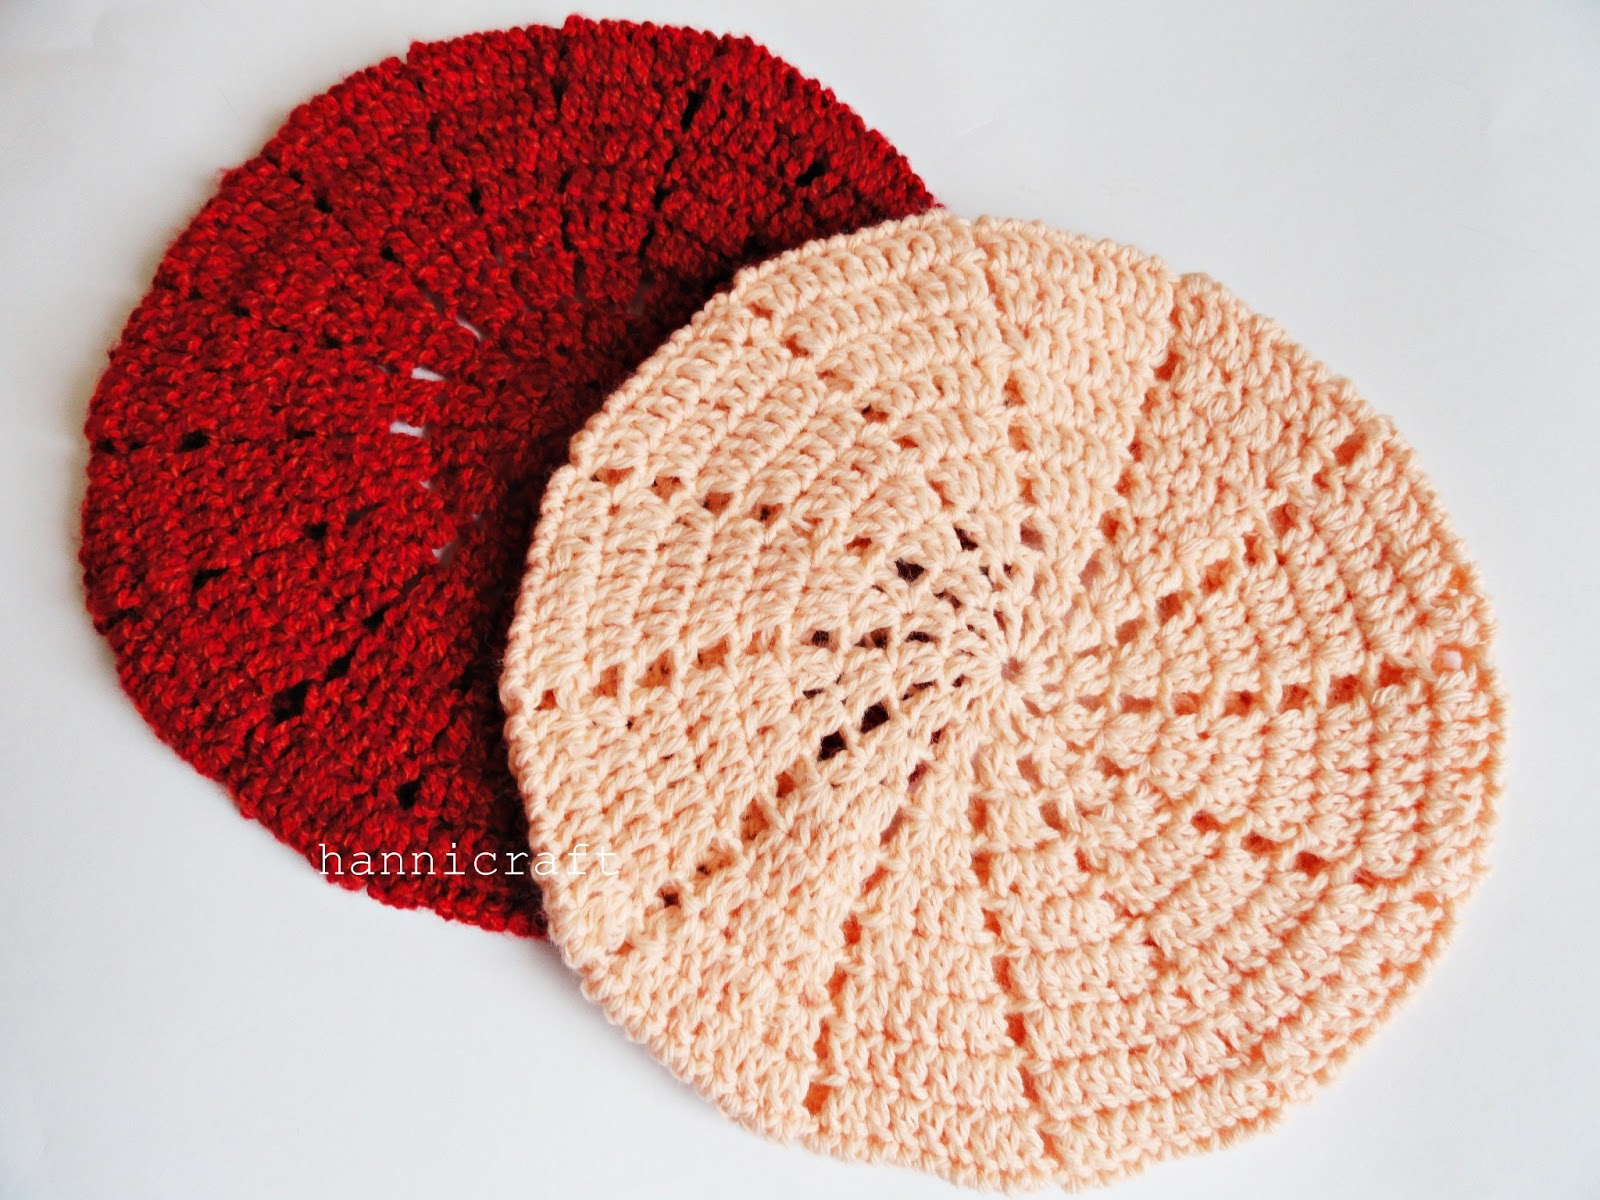 Crocheting Easy : Here is the newly made simplier version of this beret. This time in ...